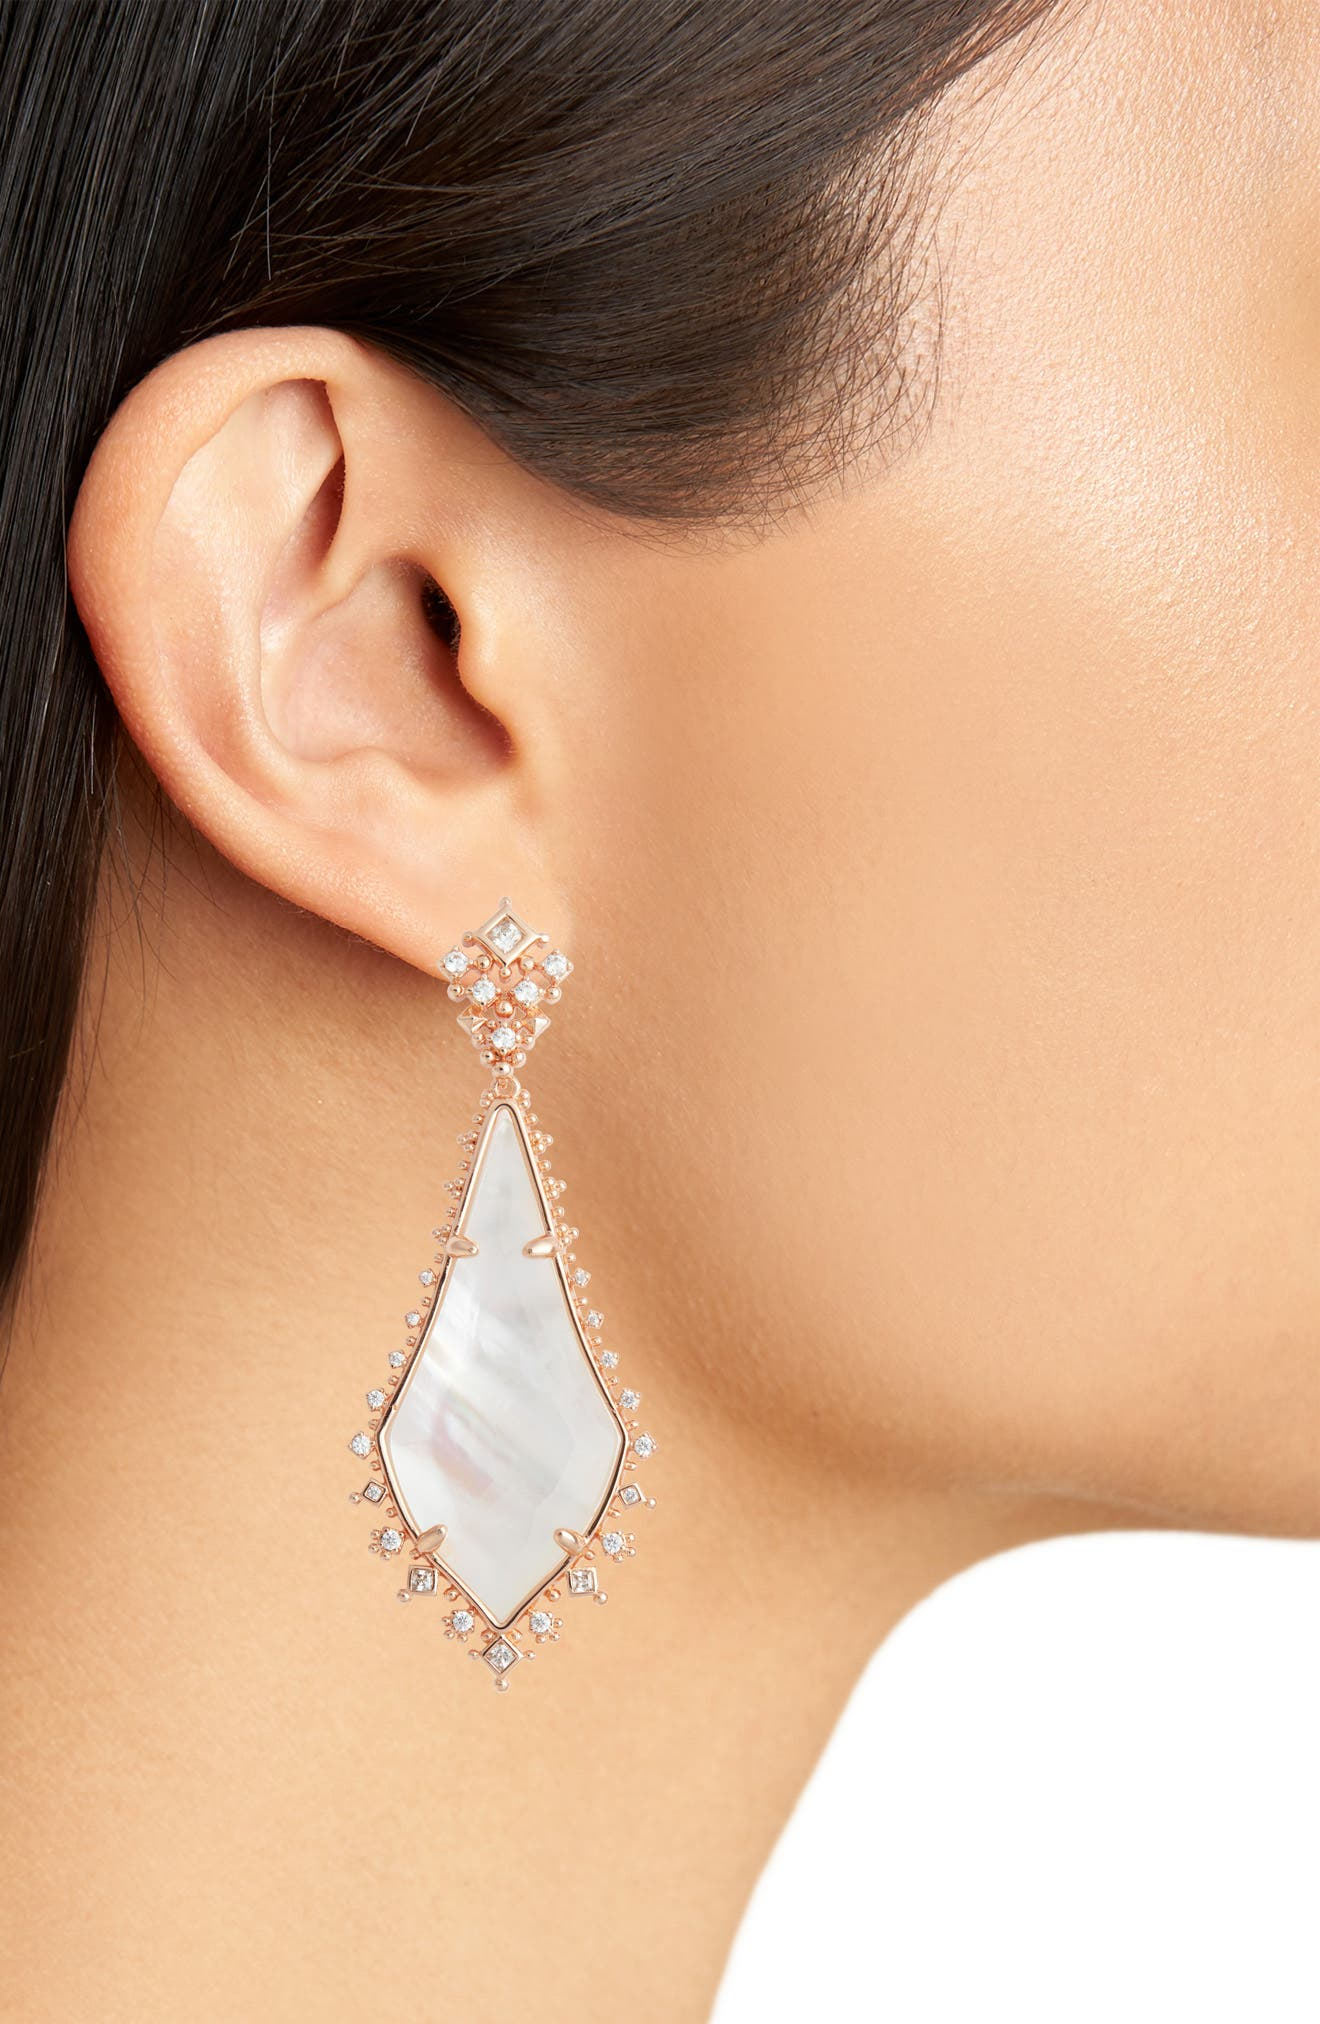 Martha Mother of Pearl Drop Earrings,                             Alternate thumbnail 2, color,                             Rose Gold